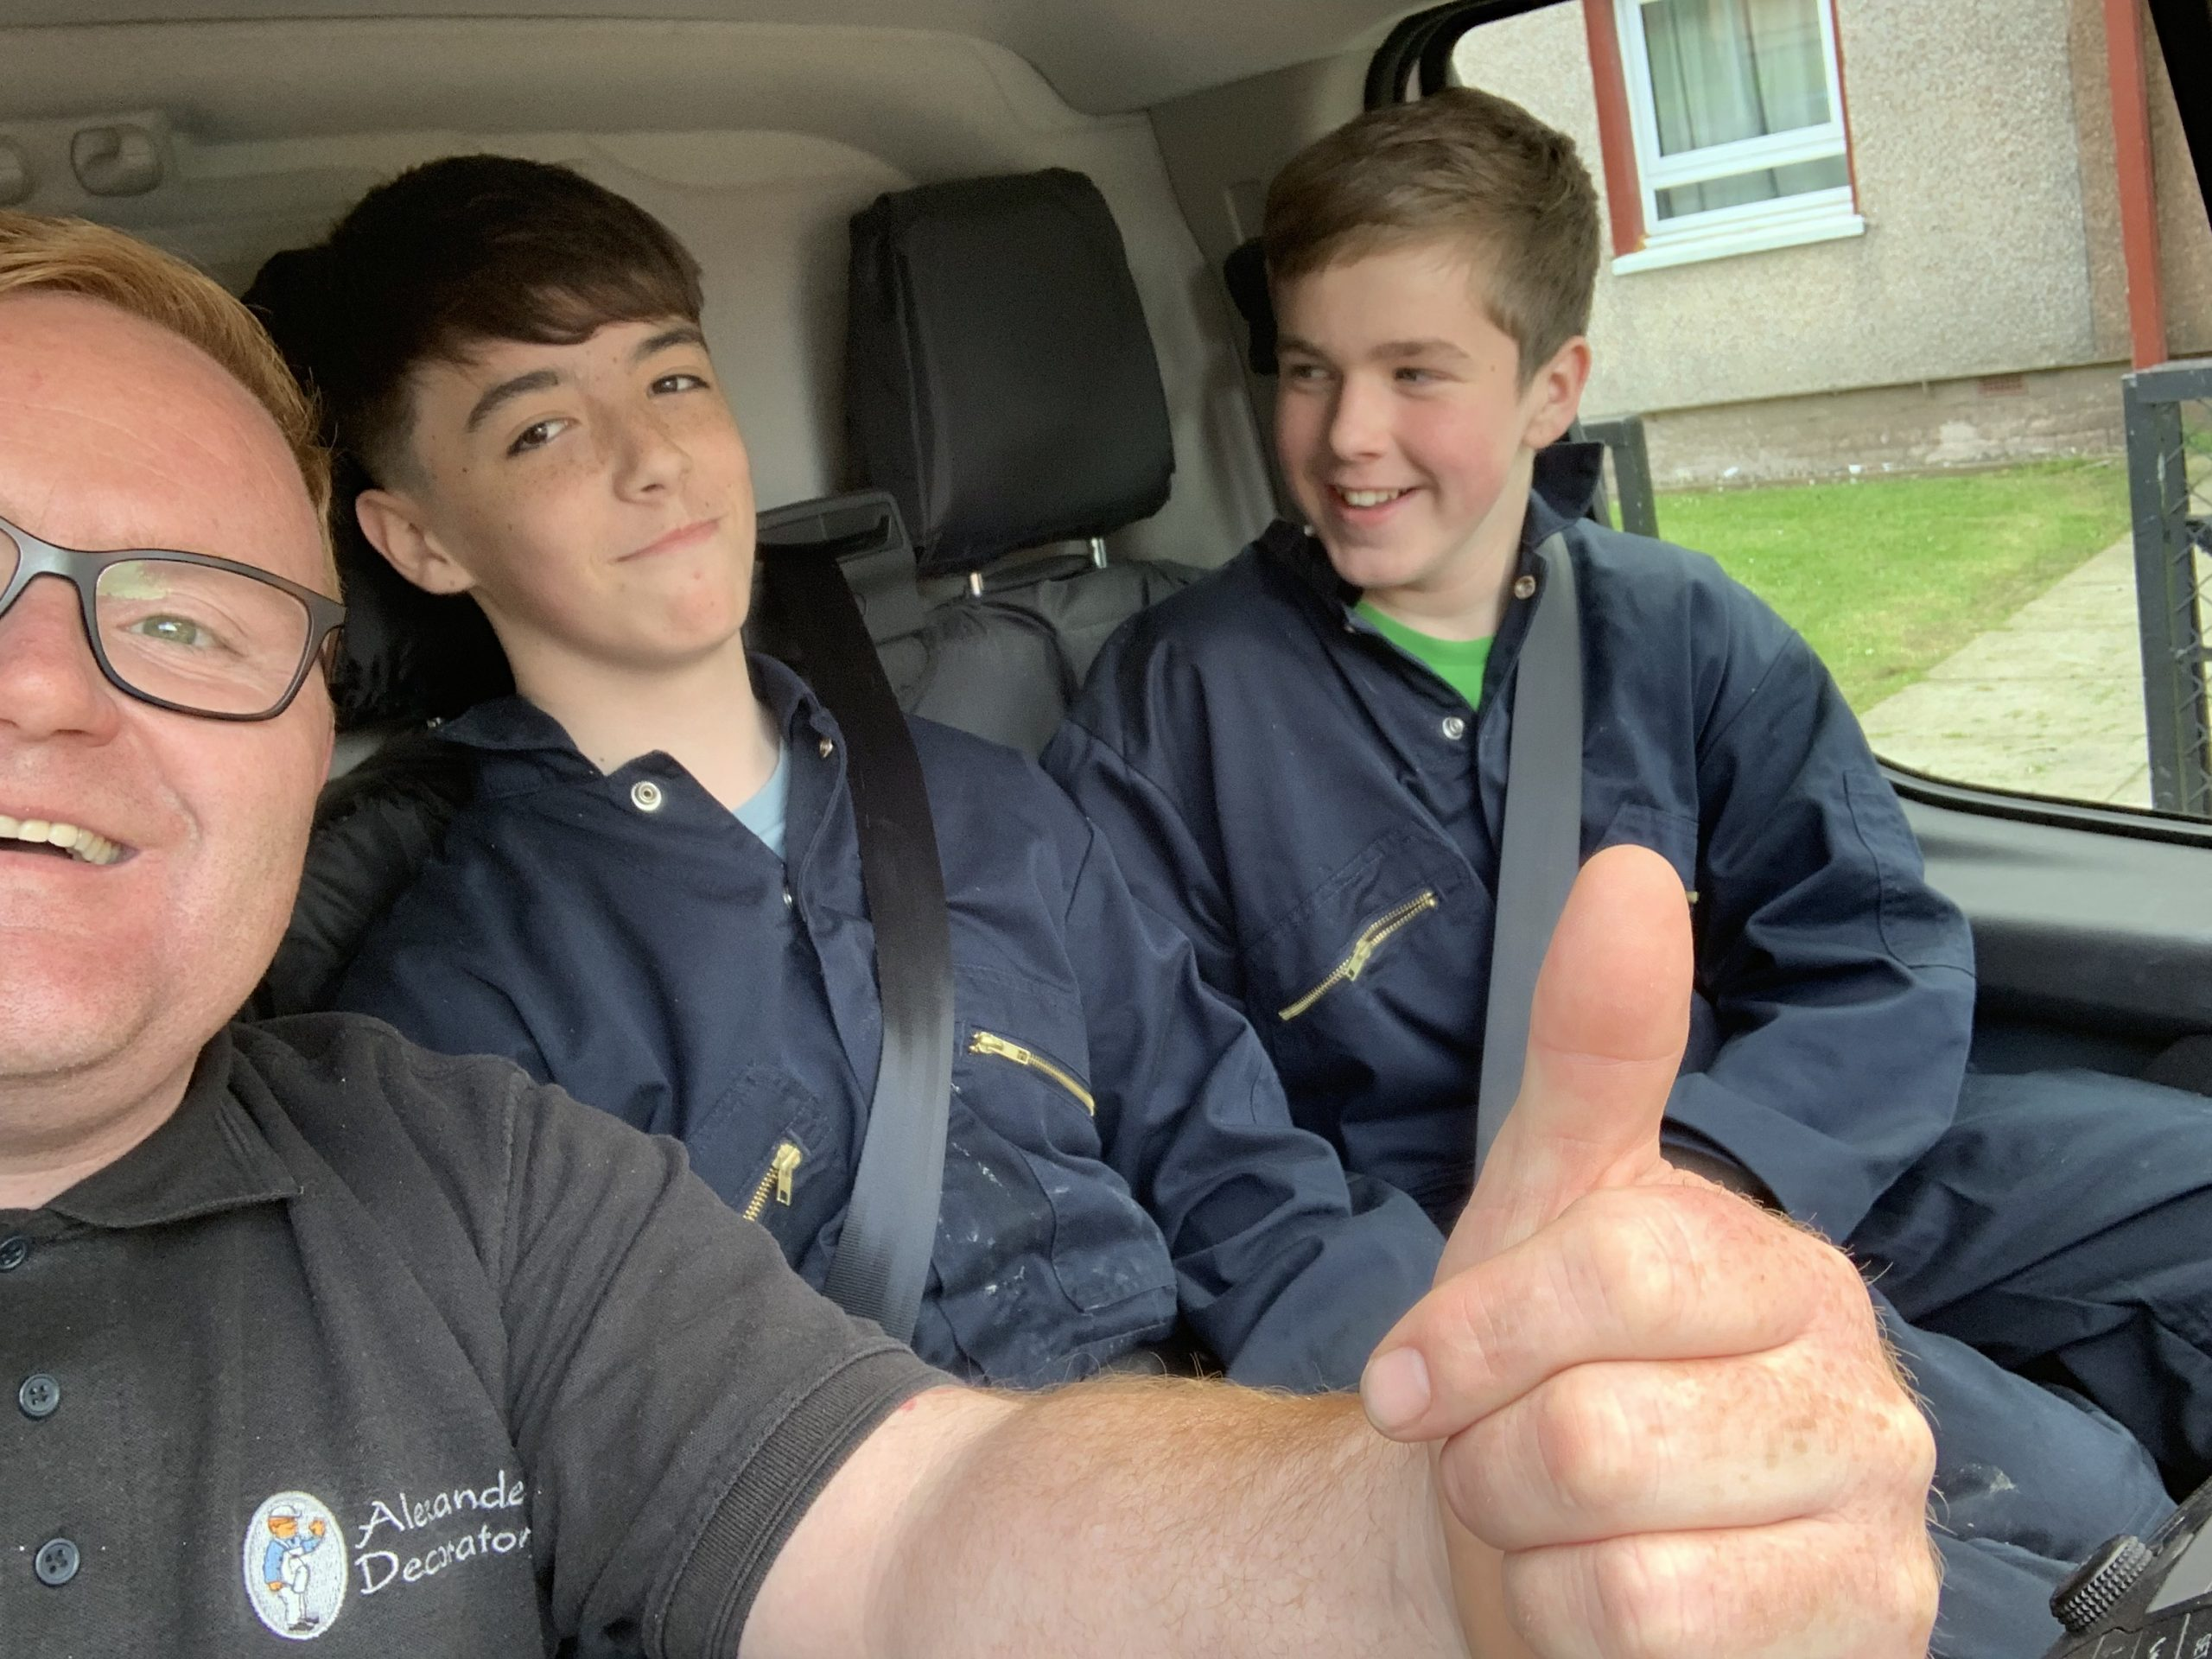 John and 2 young apprentices in the van